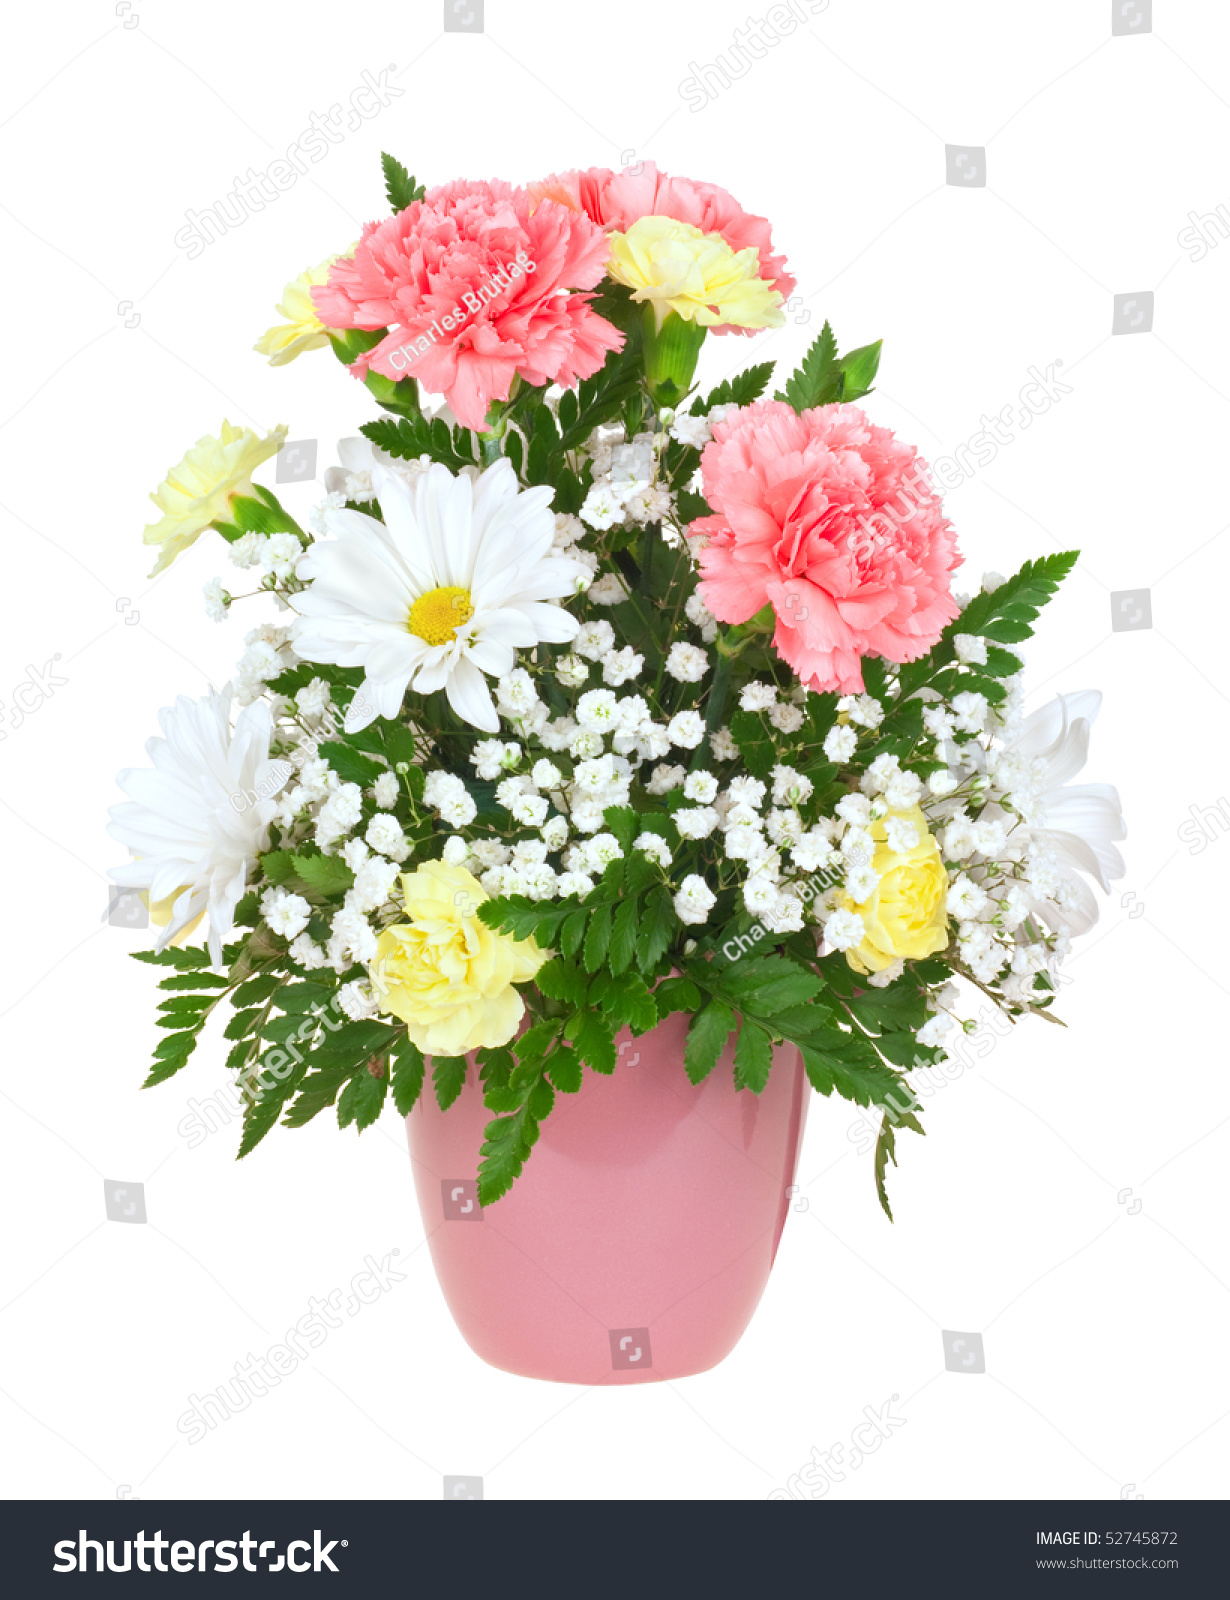 Carnation daisy babys breath flower bouquet stock photo edit now carnation daisy and babys breath flower bouquet in a pot isolated on white izmirmasajfo